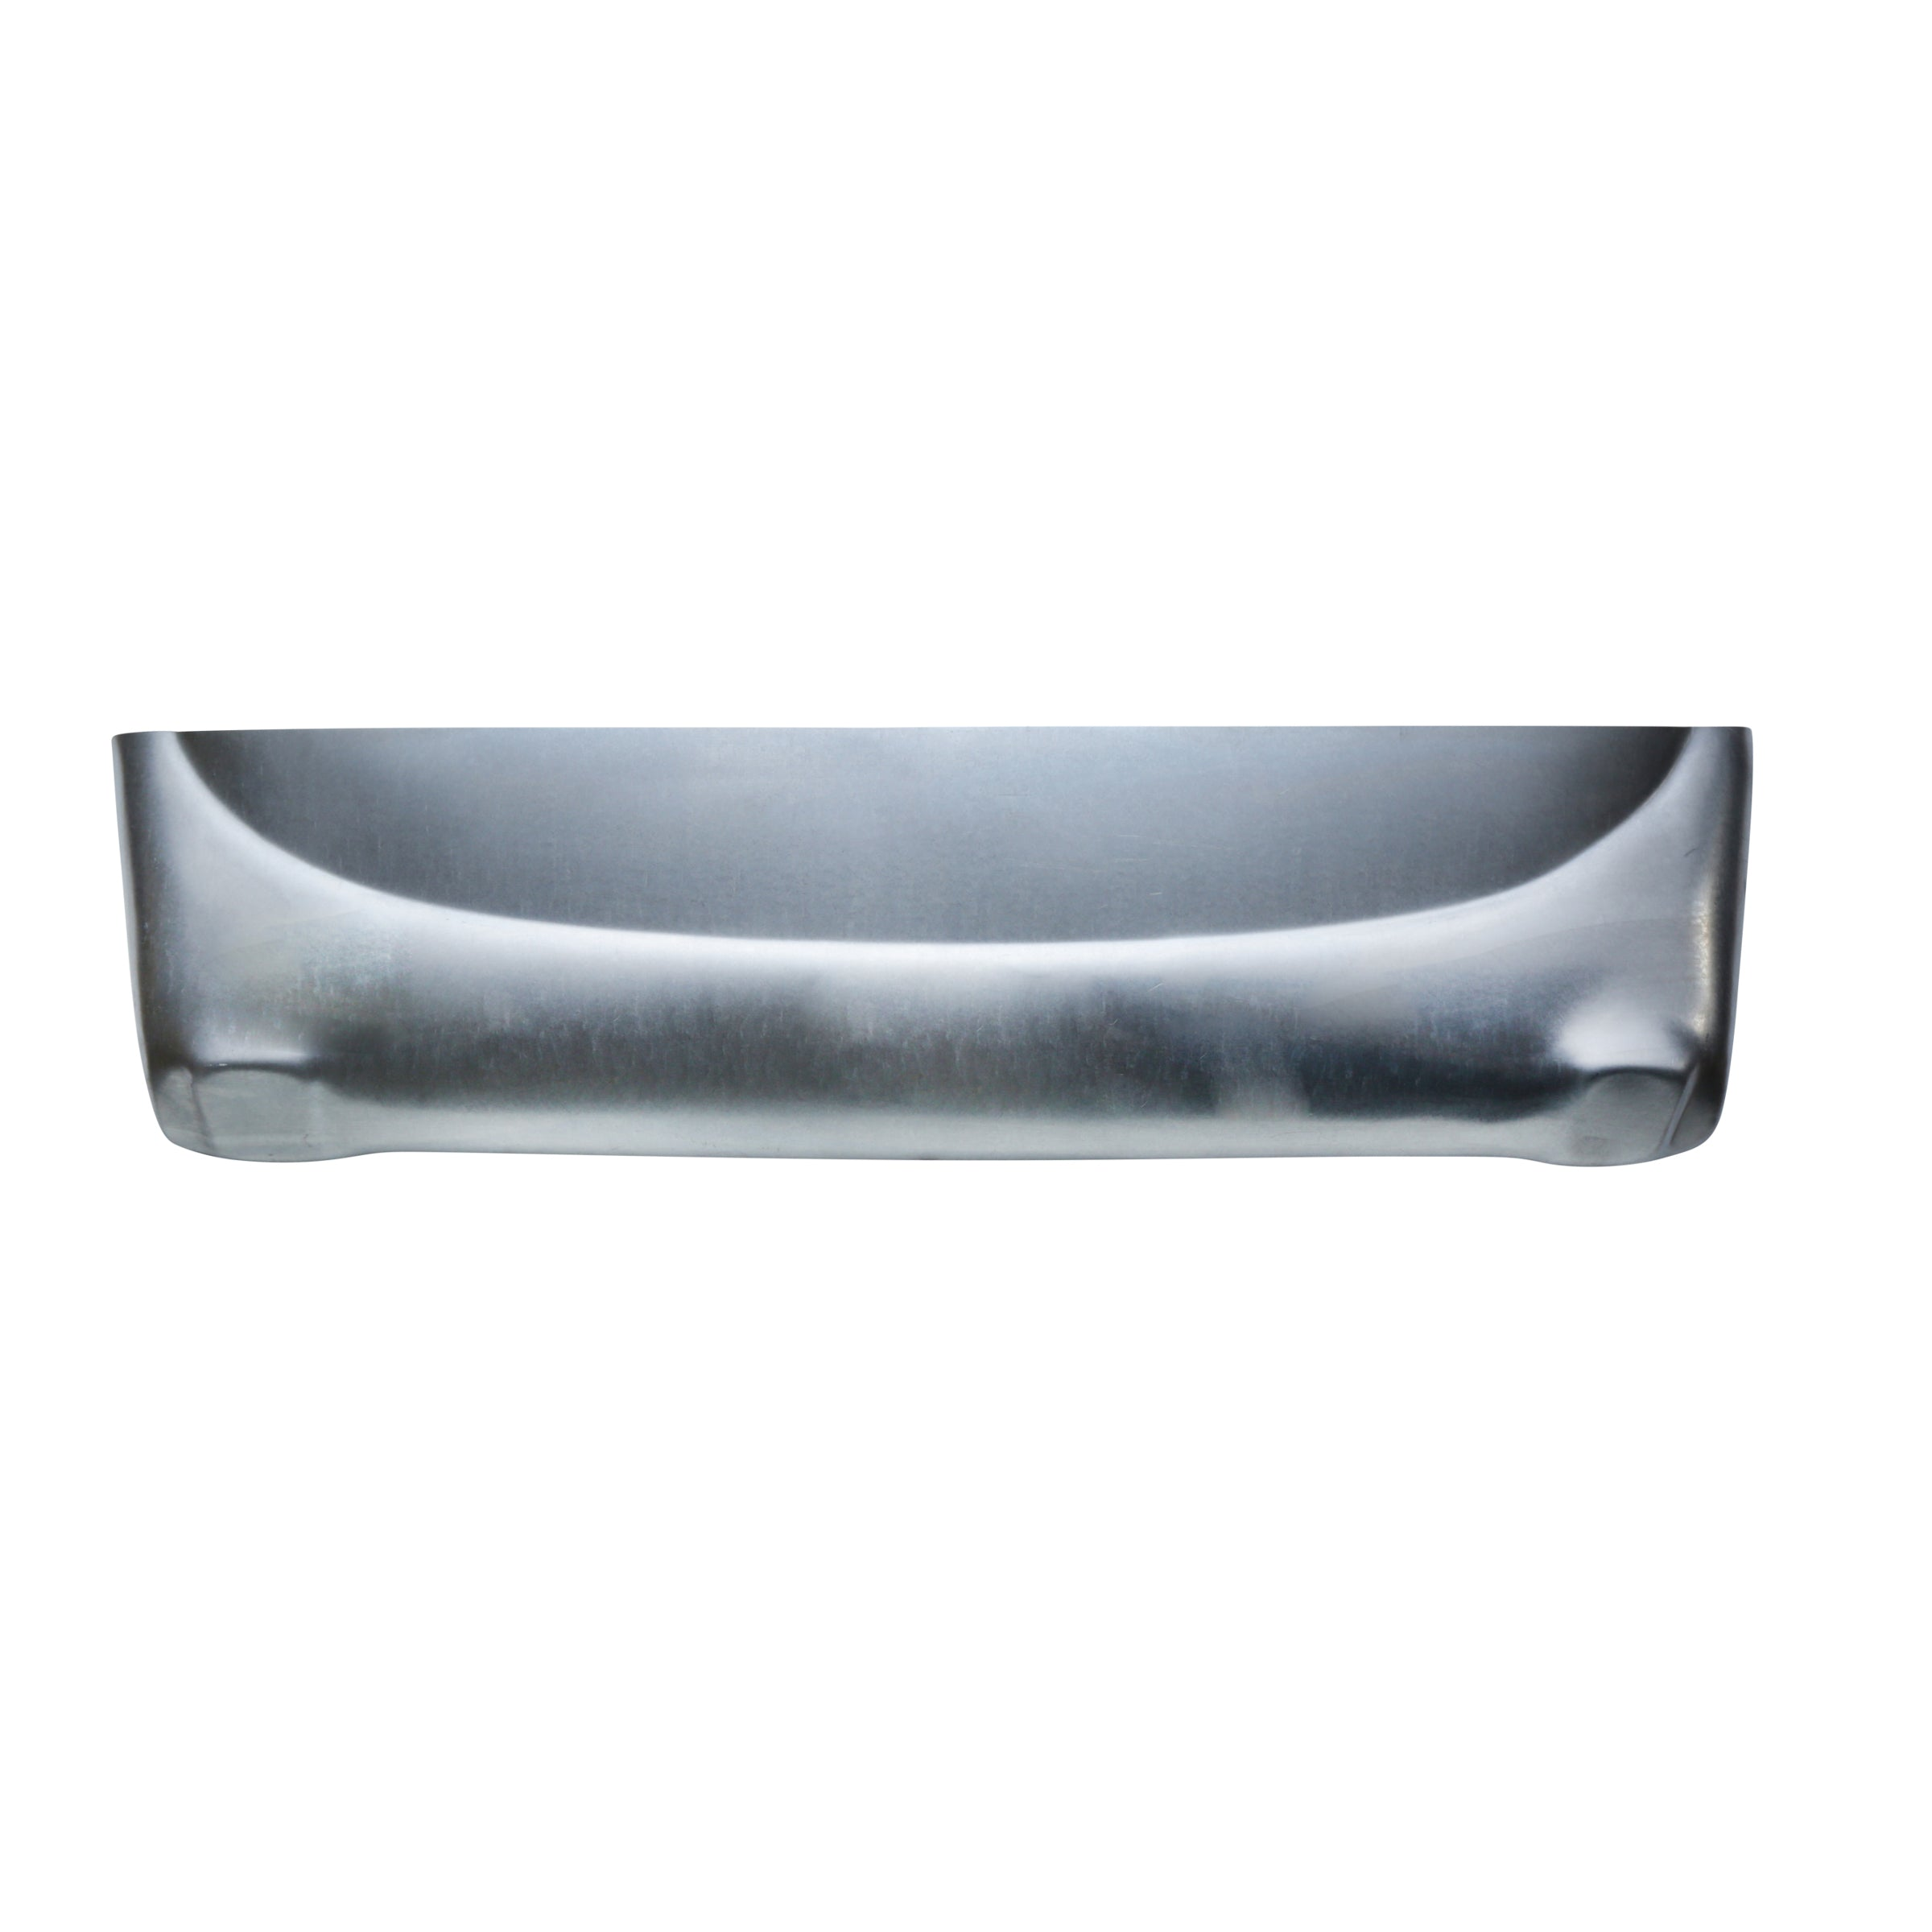 Below Trunk Lid Panel (Tail Pan) • 1935-36 Ford Standard & Deluxe Flatback Sedan